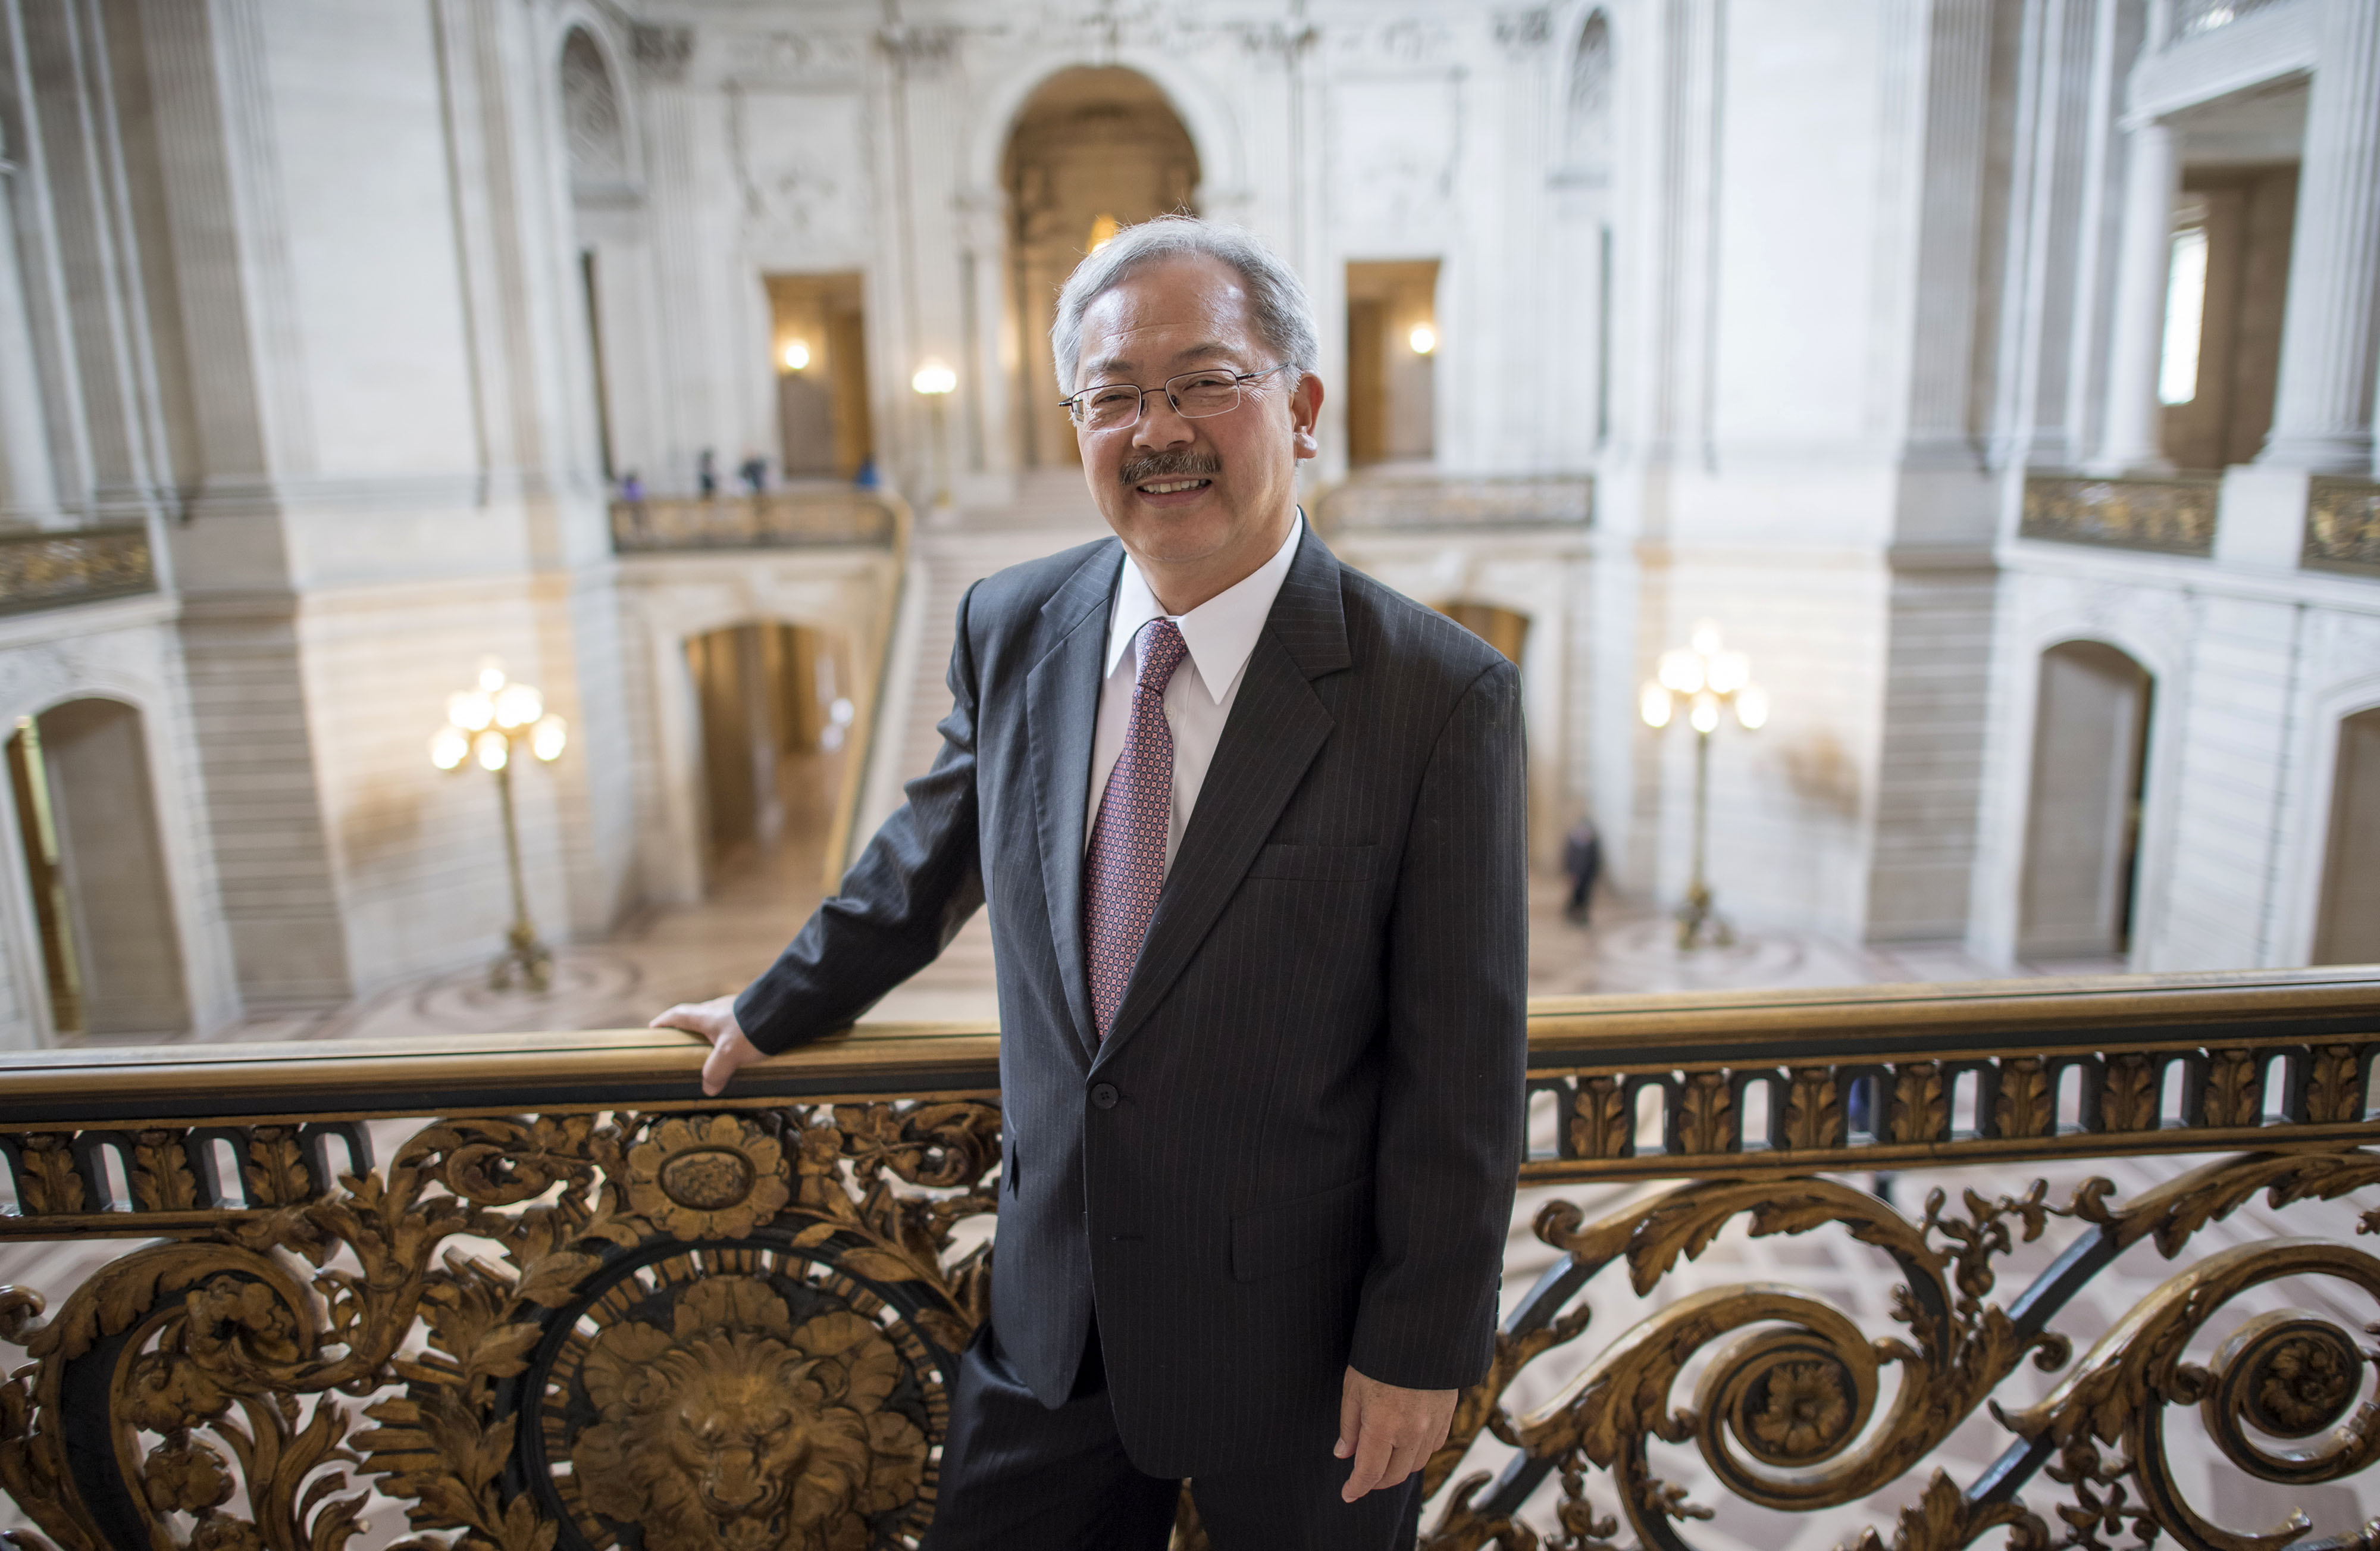 Edwin  Ed  Lee, mayor of San Francisco, stands for a photograph inside City Hall in San Francisco, California in August